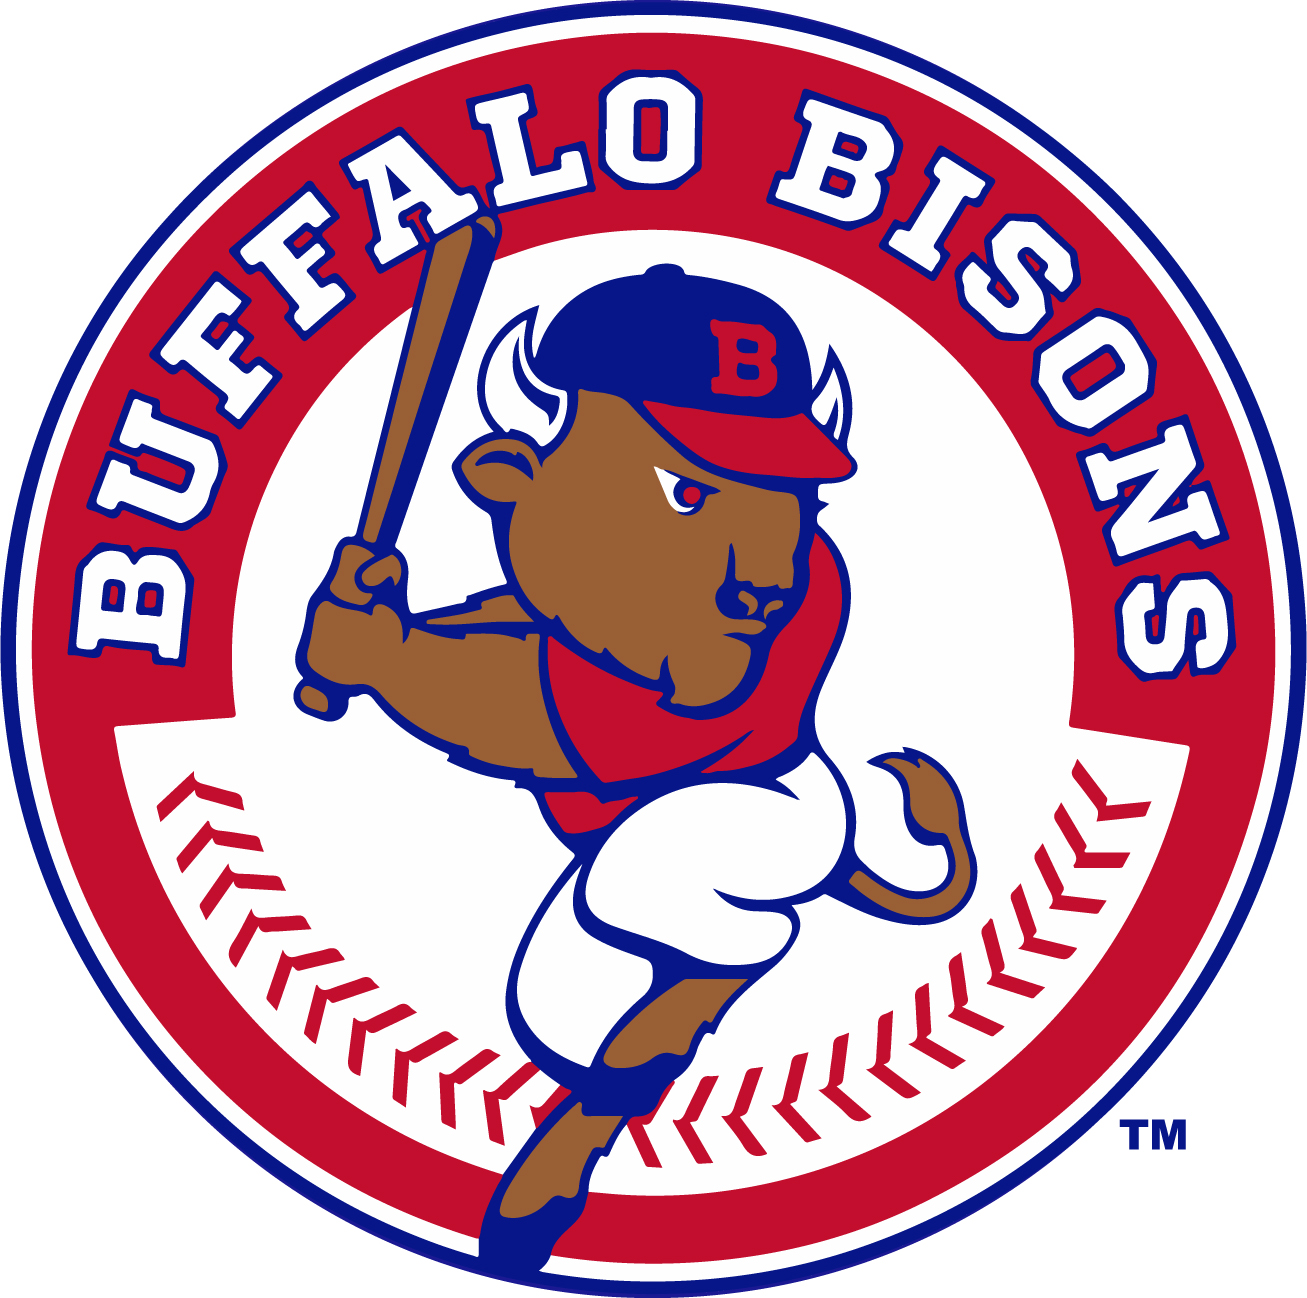 Morning Pitch: Bisons host Rochester at 1 p.m. Wednesday